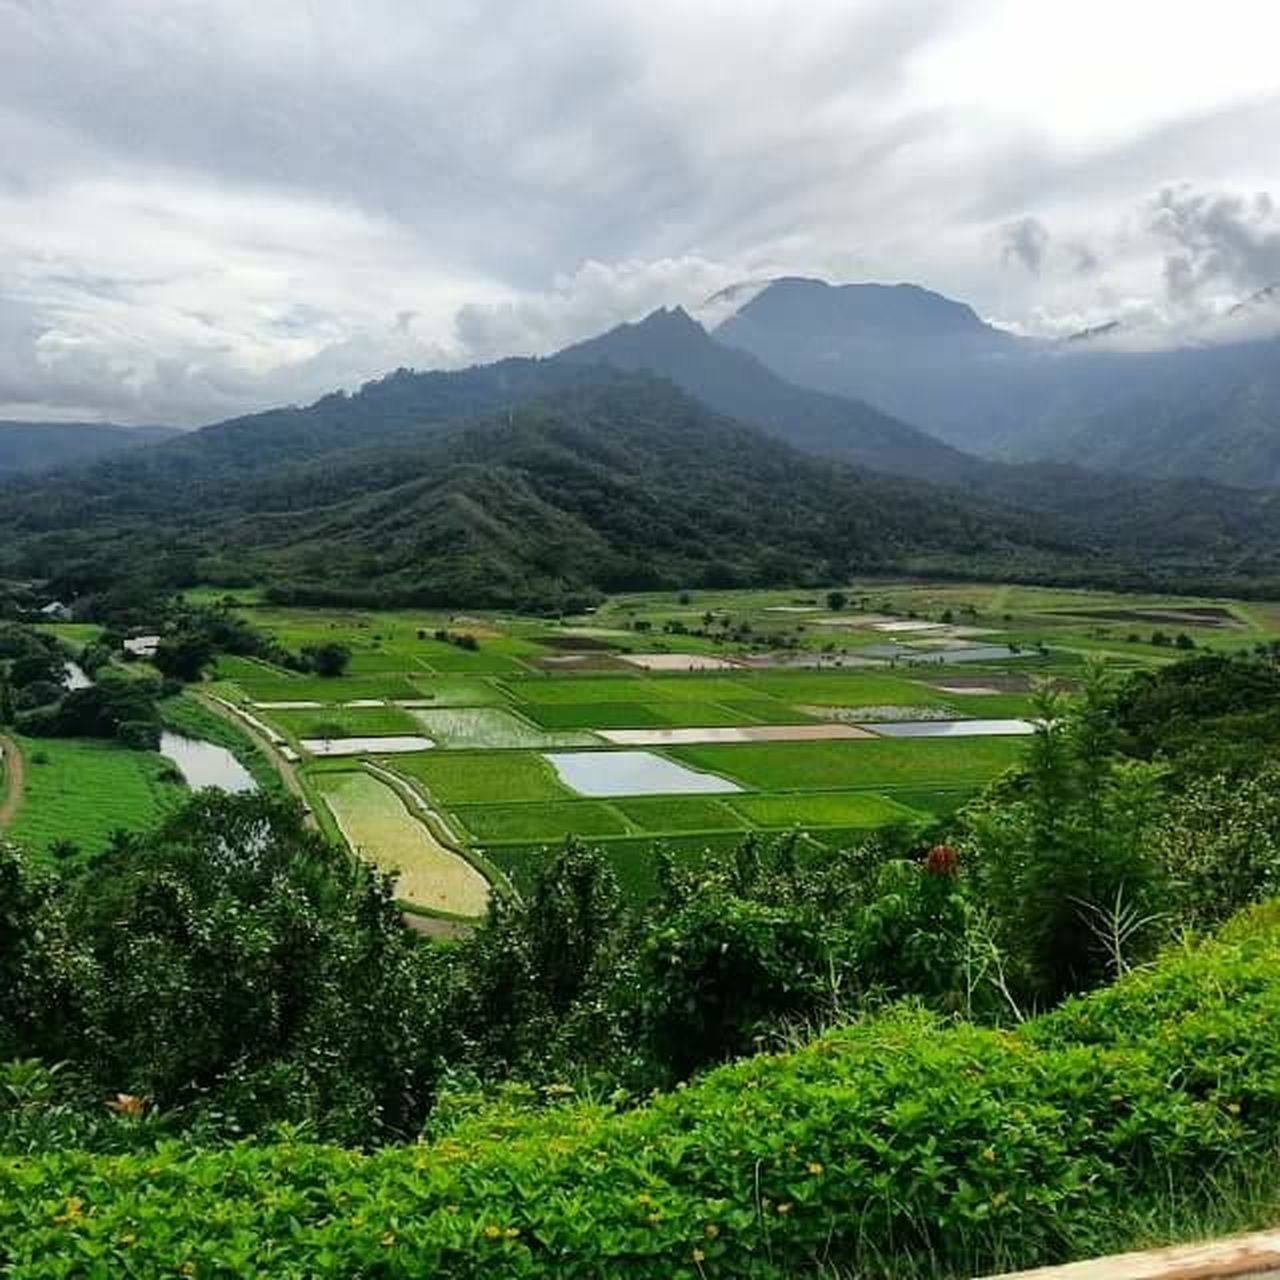 Landscape Mountain Range Green Color Cloud - Sky Field Rural Scene Mountain Social Issues No People Nature Outdoors Terraced Field Day Lush Greenery Kauai Hawaii Beauty In Nature Green Color Tranquility Postcard